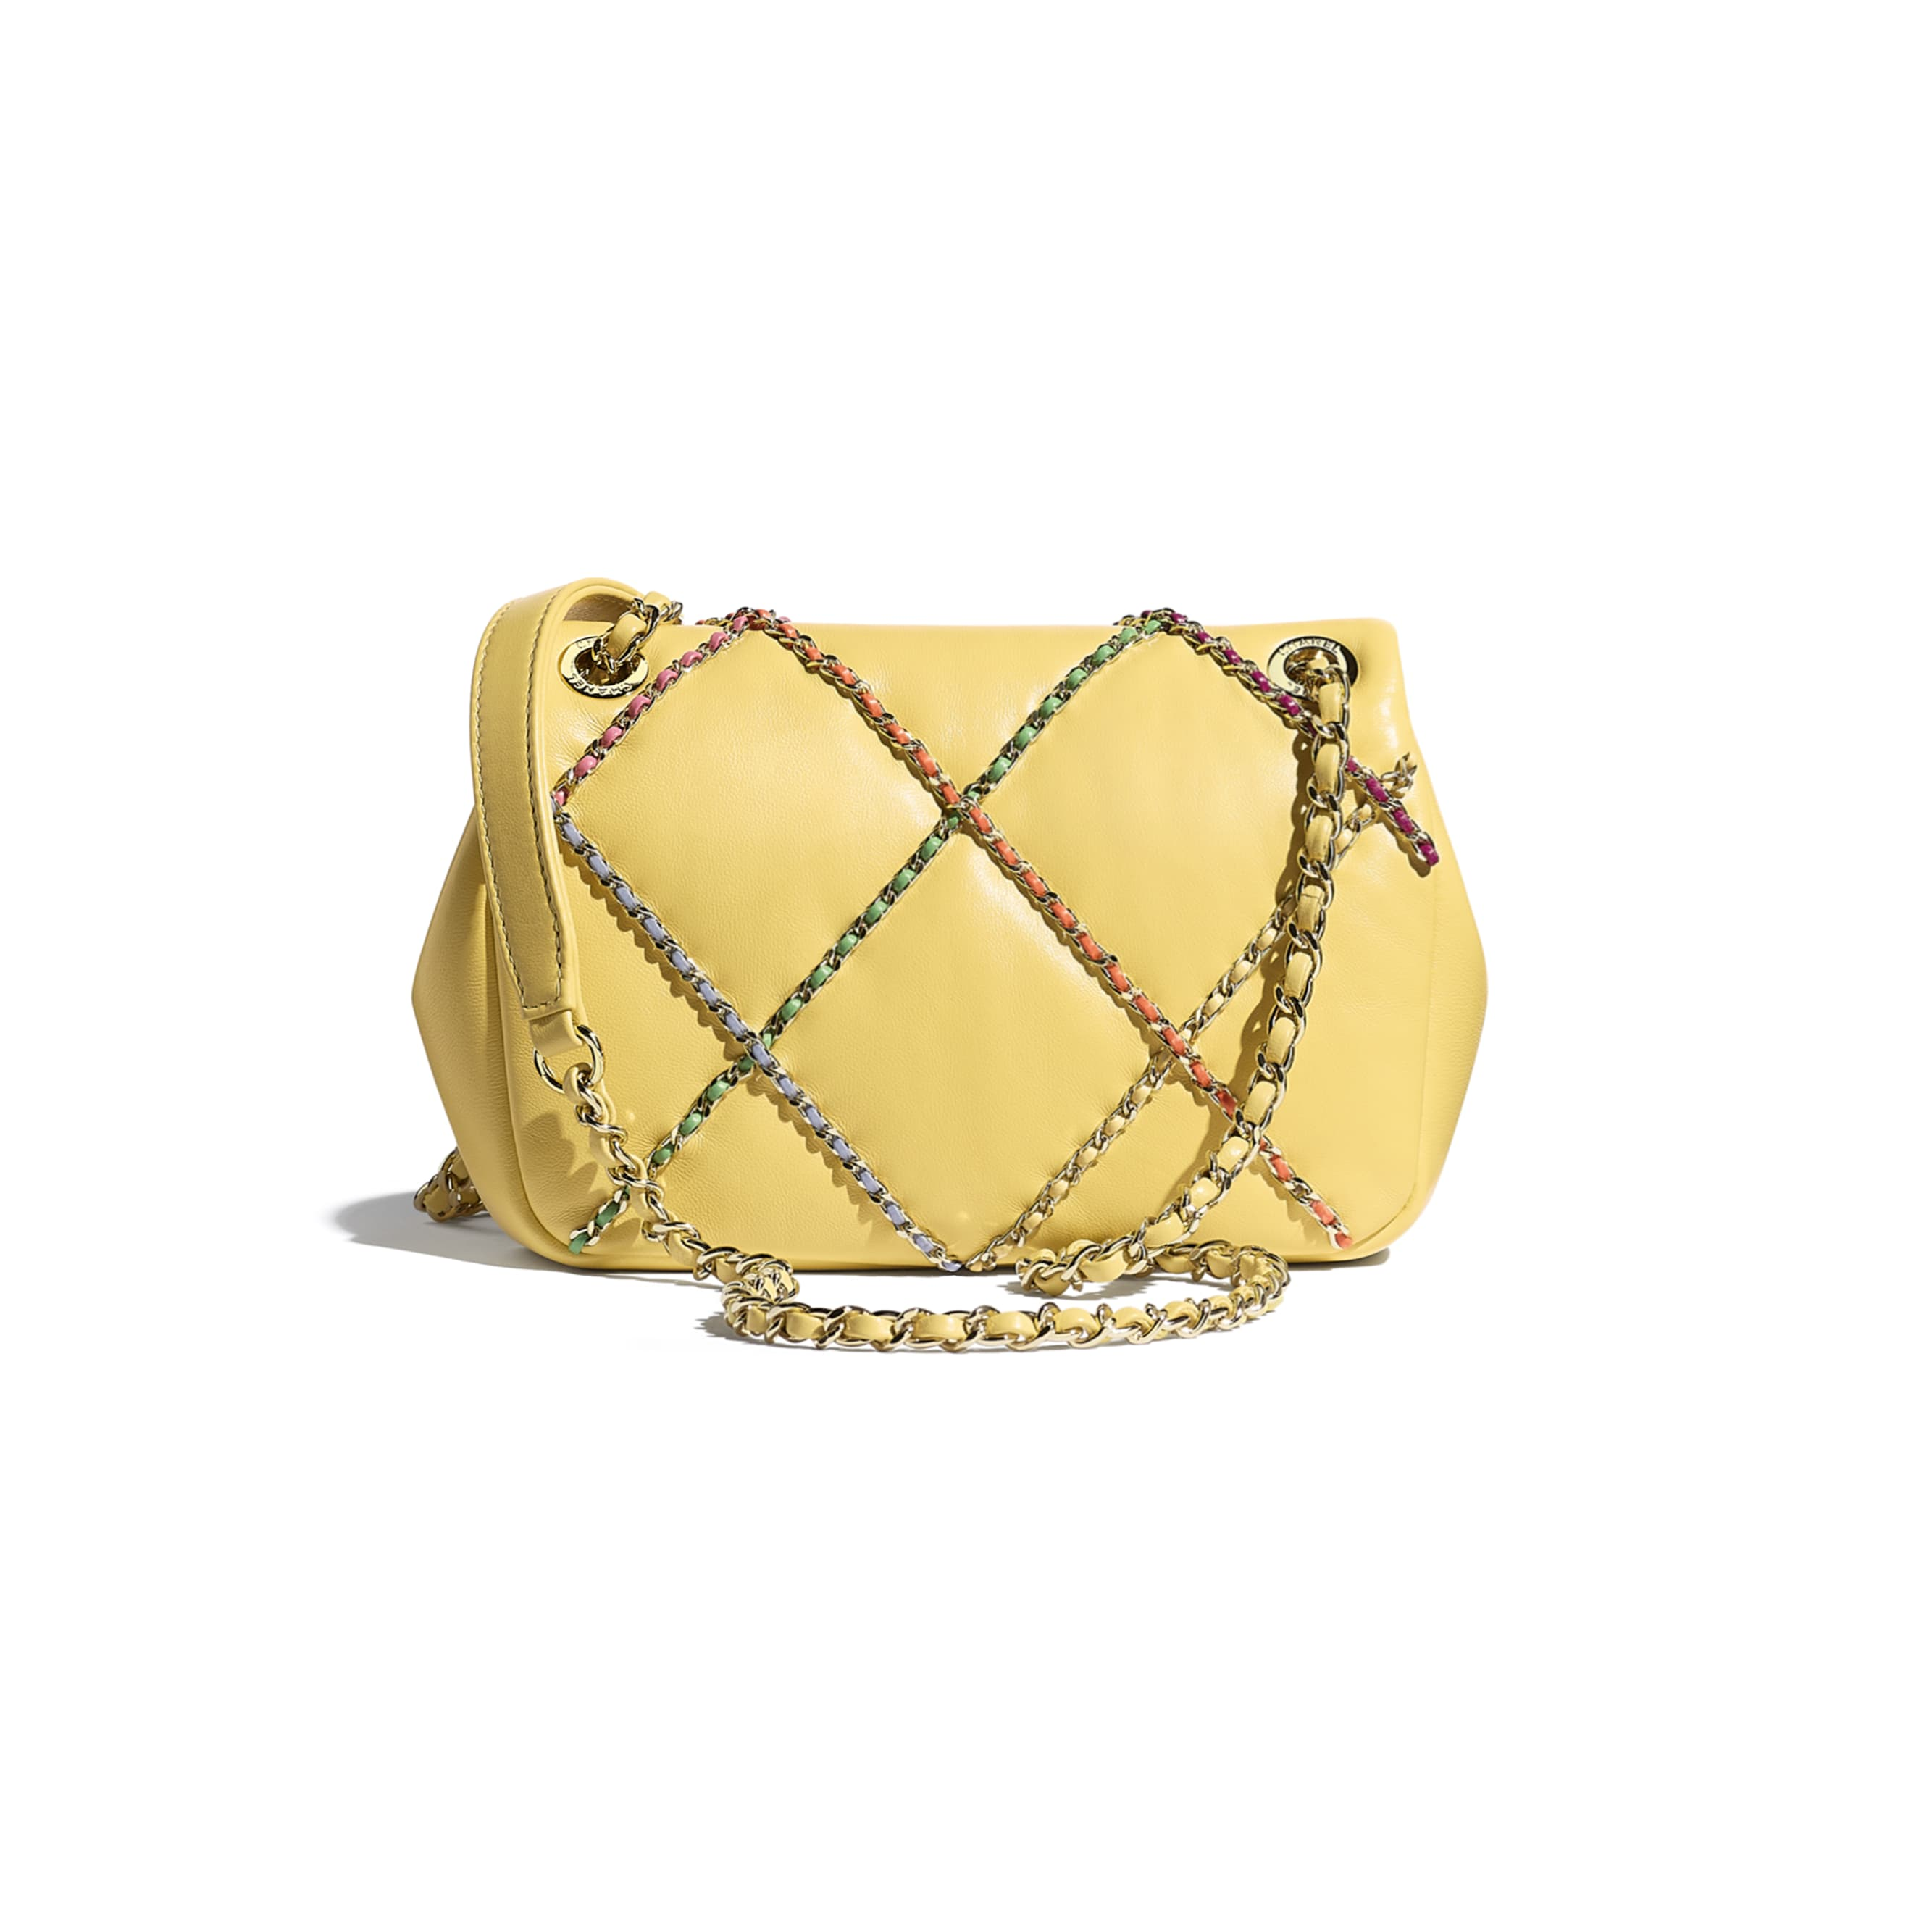 Small Flap Bag - Yellow & Multicolour - Lambskin & Gold Metal  - CHANEL - Alternative view - see standard sized version